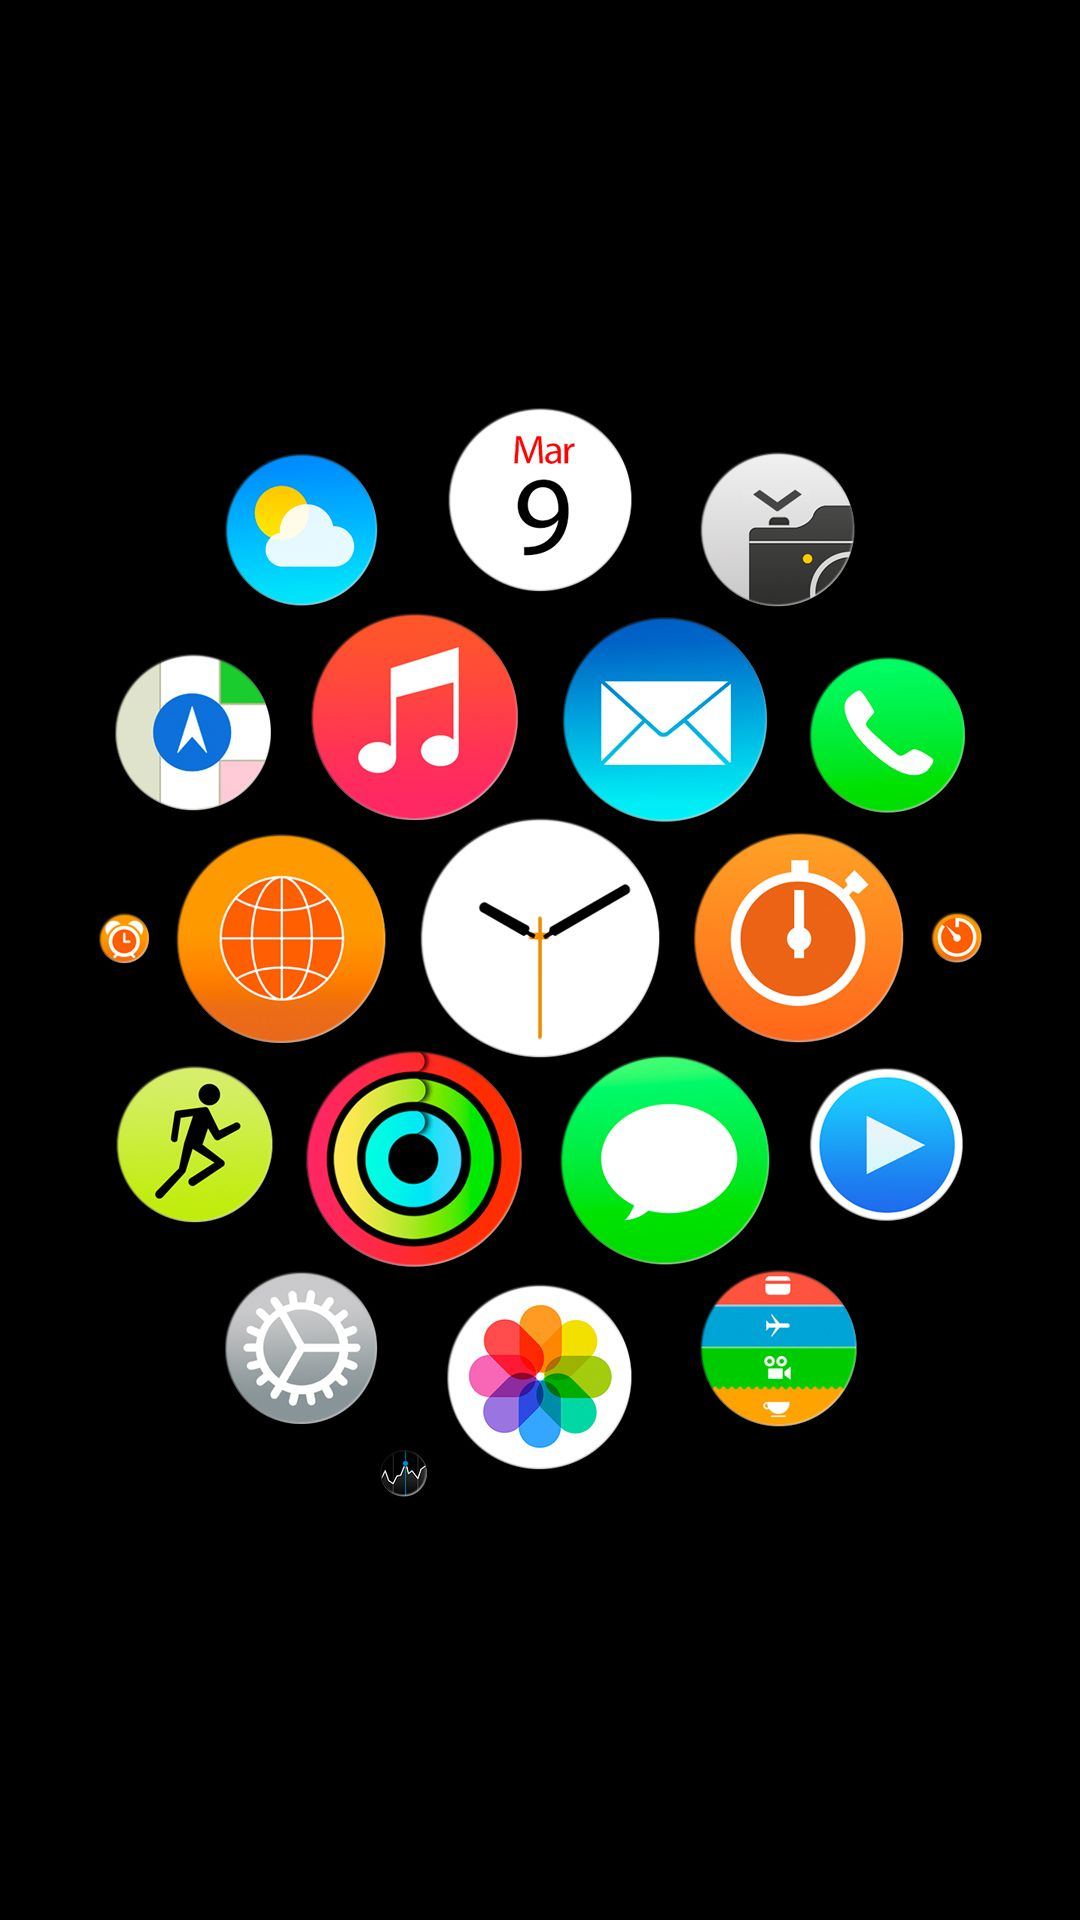 Apple Watch Official 1 Iphone 6 Plus Wallpaper 1080x1920